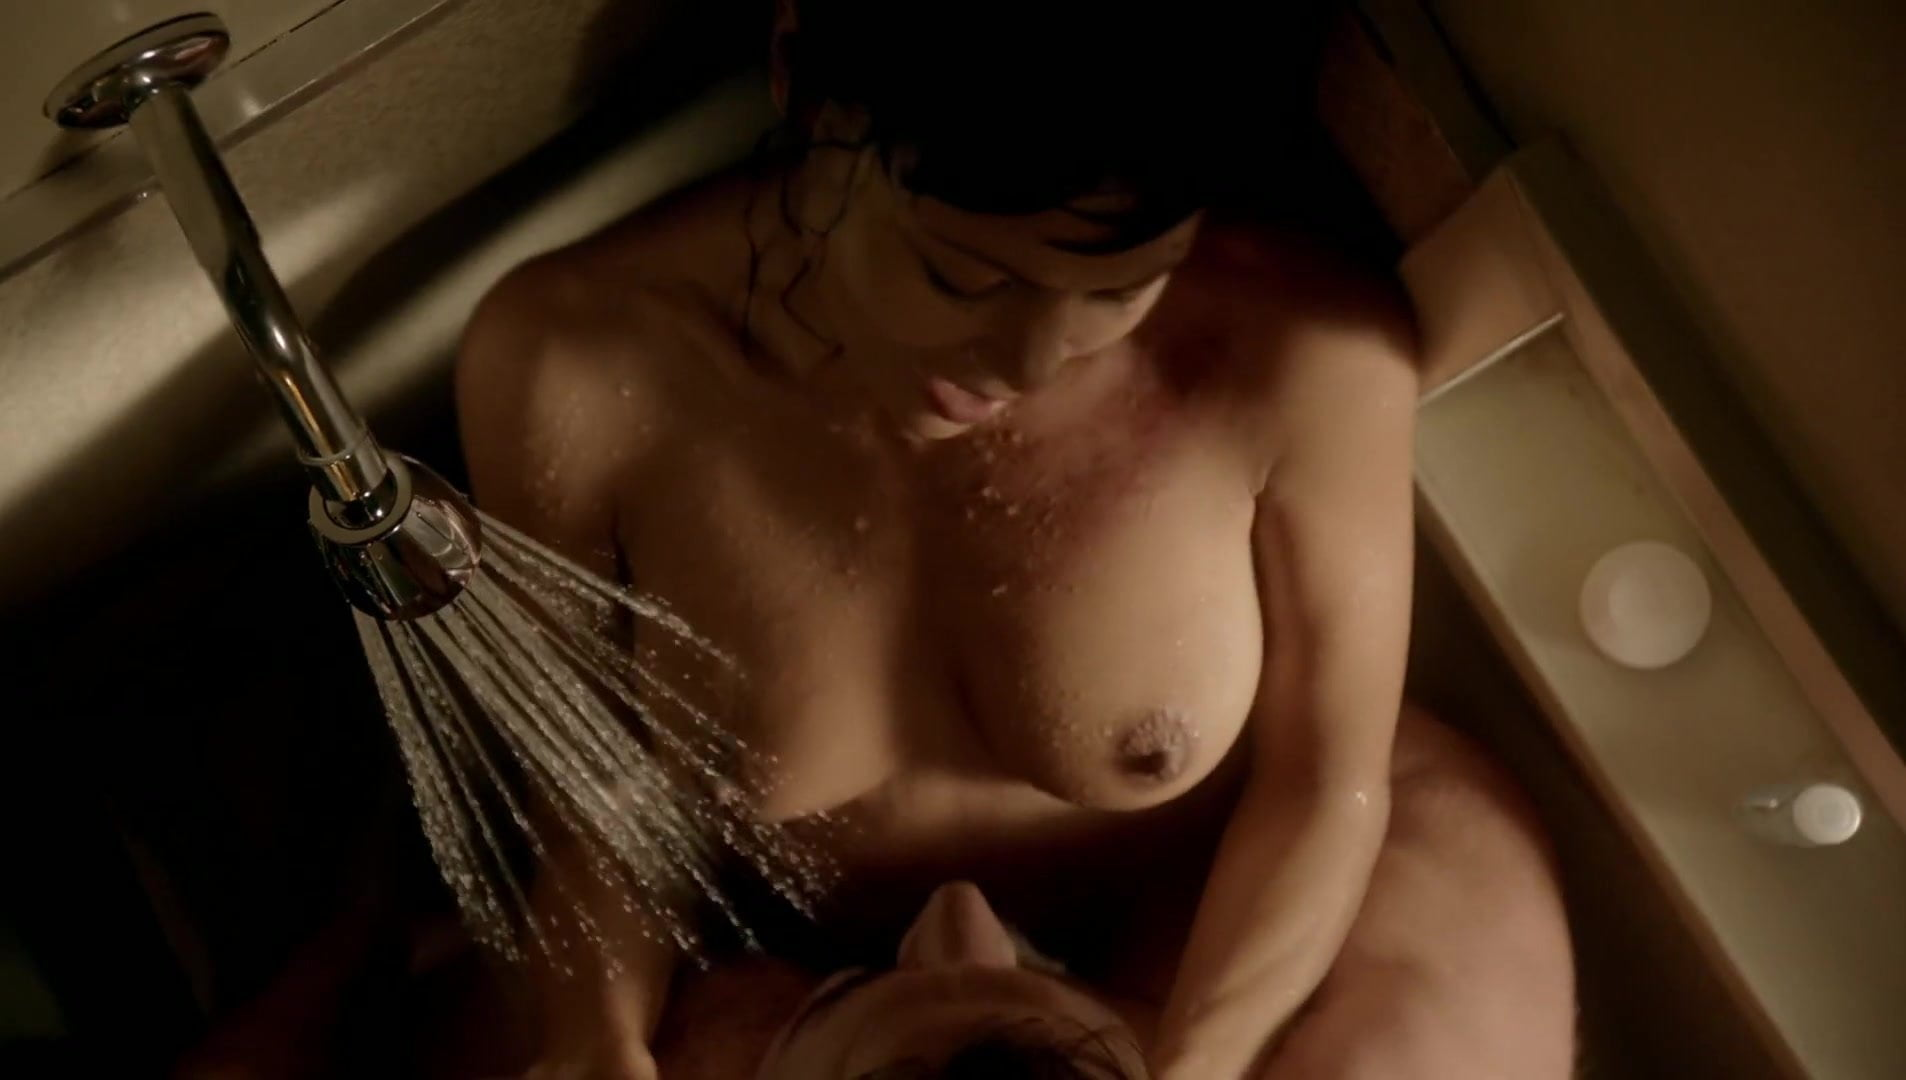 Thandie newton nude movies, nude nice hips mexican